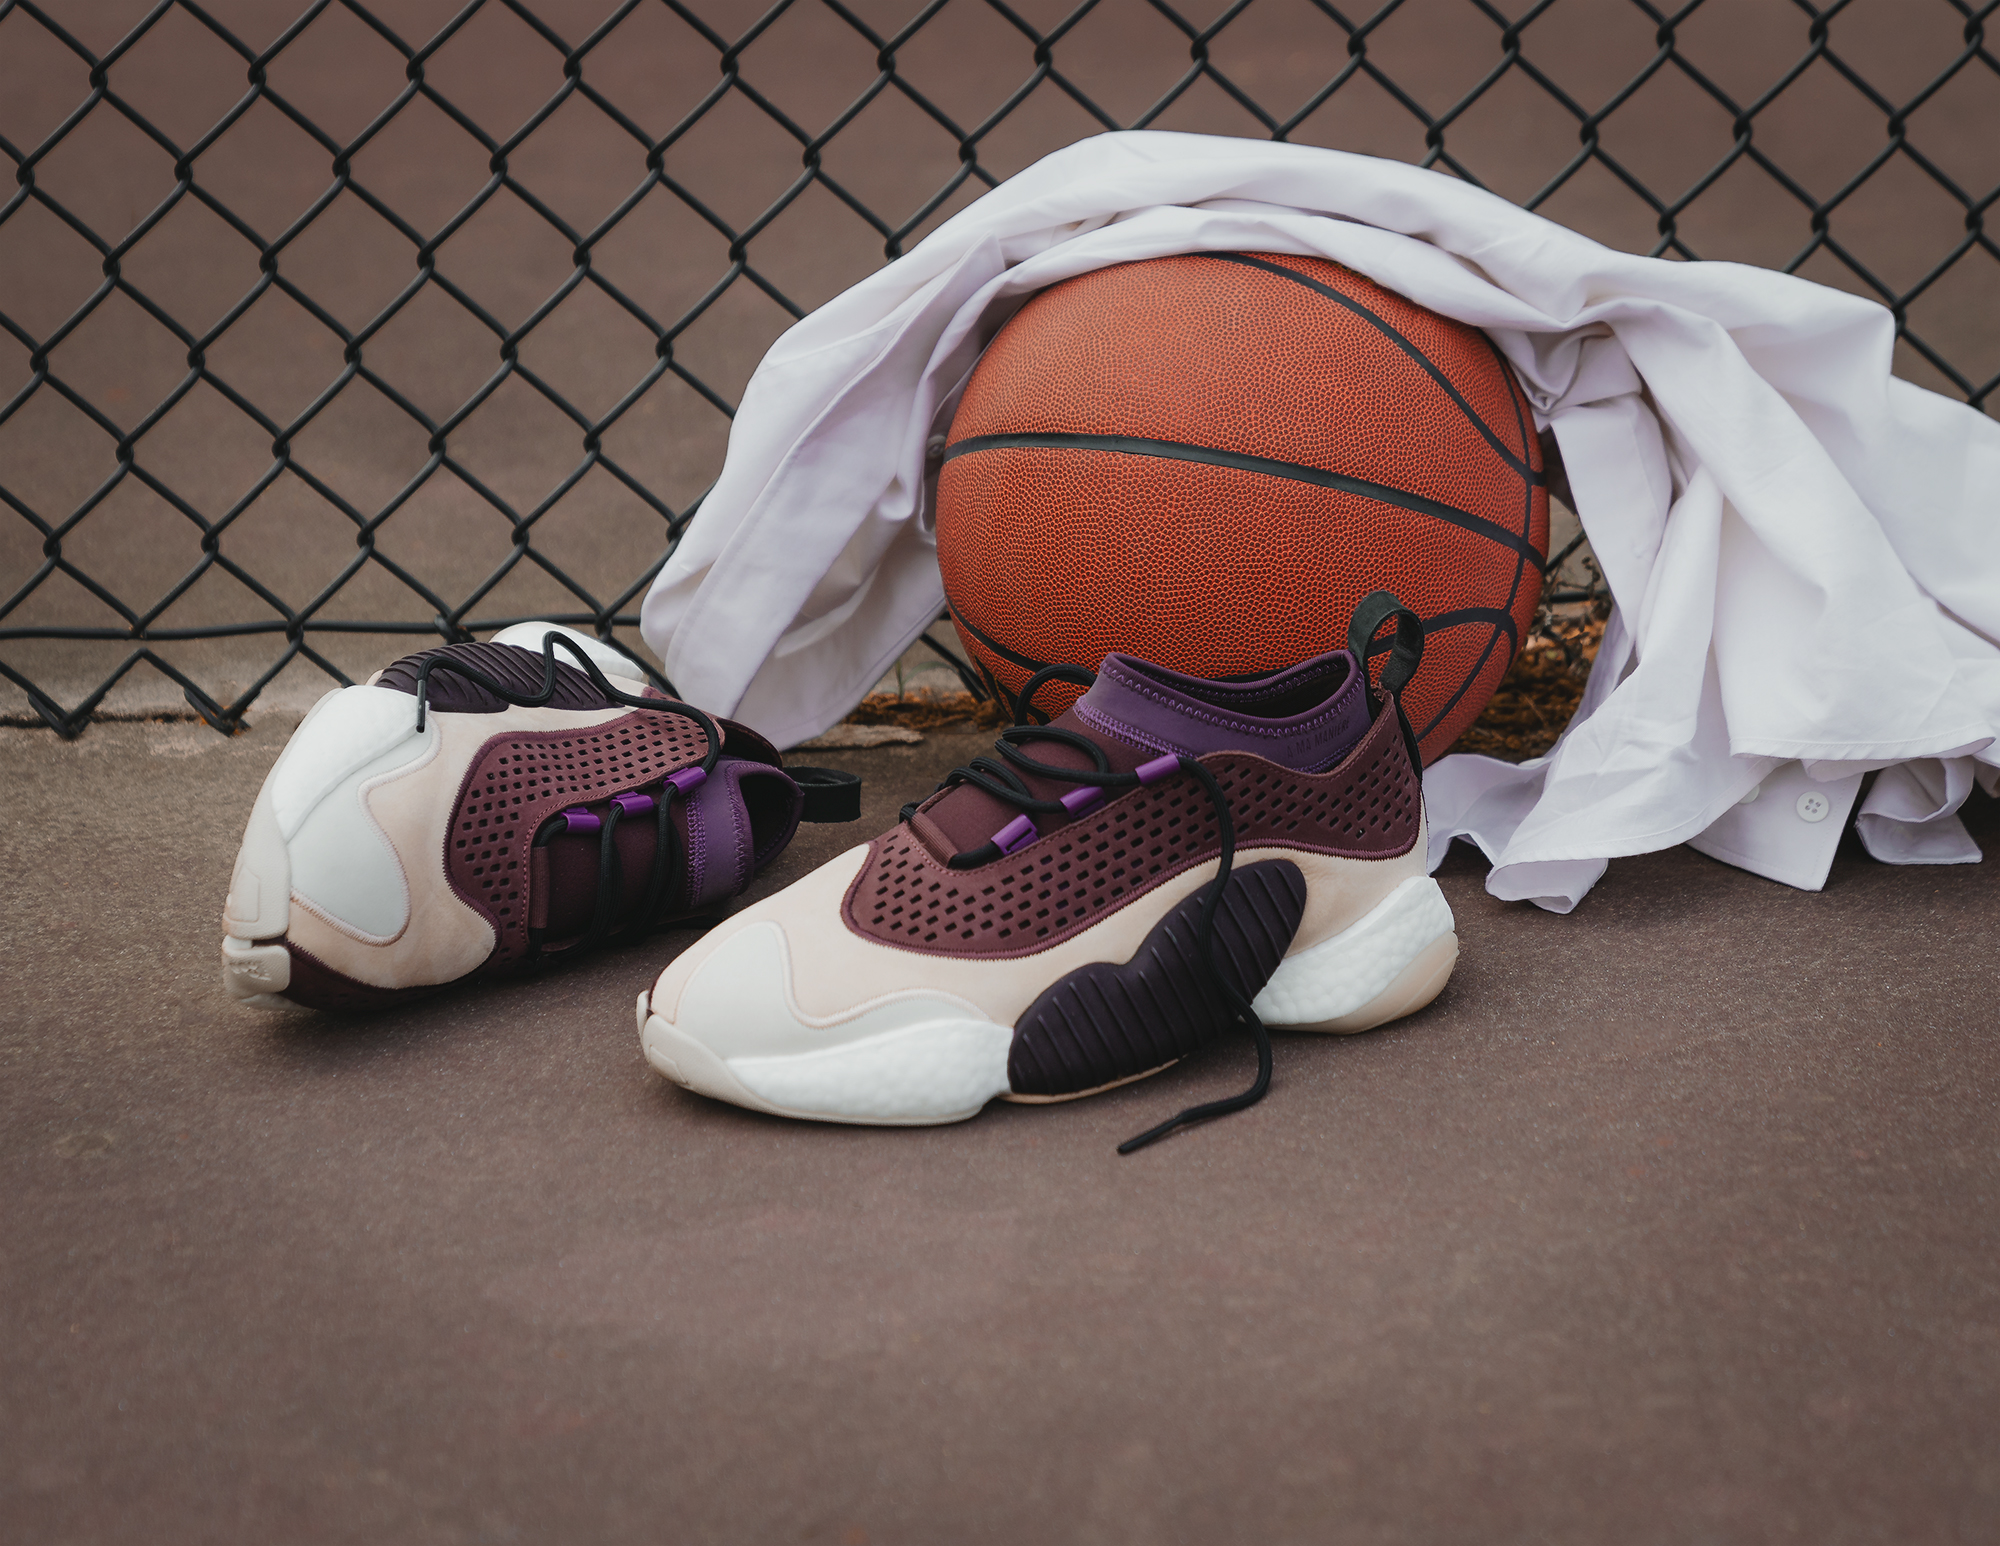 Adidas Consortium X A Ma Maniére Team Up On BYW Silhouette 1